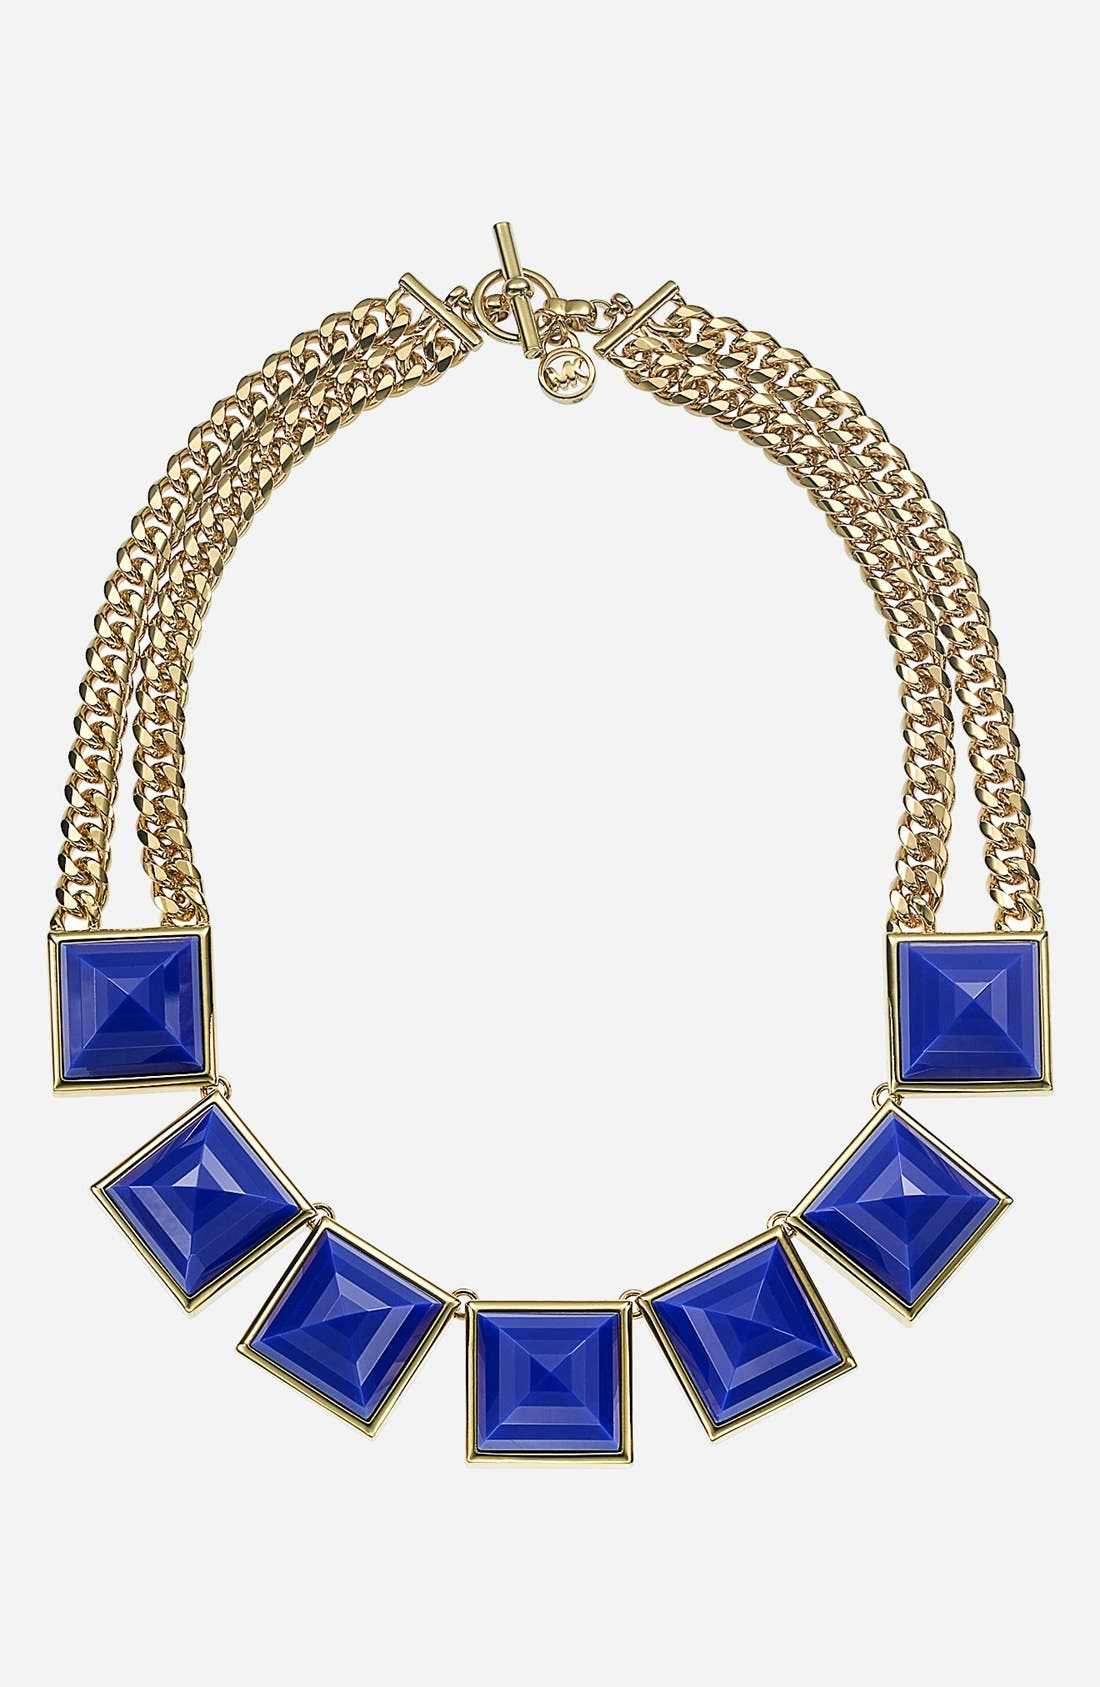 Alternate Image 1 Selected - Michael Kors 'Glam Rock' Collar Necklace